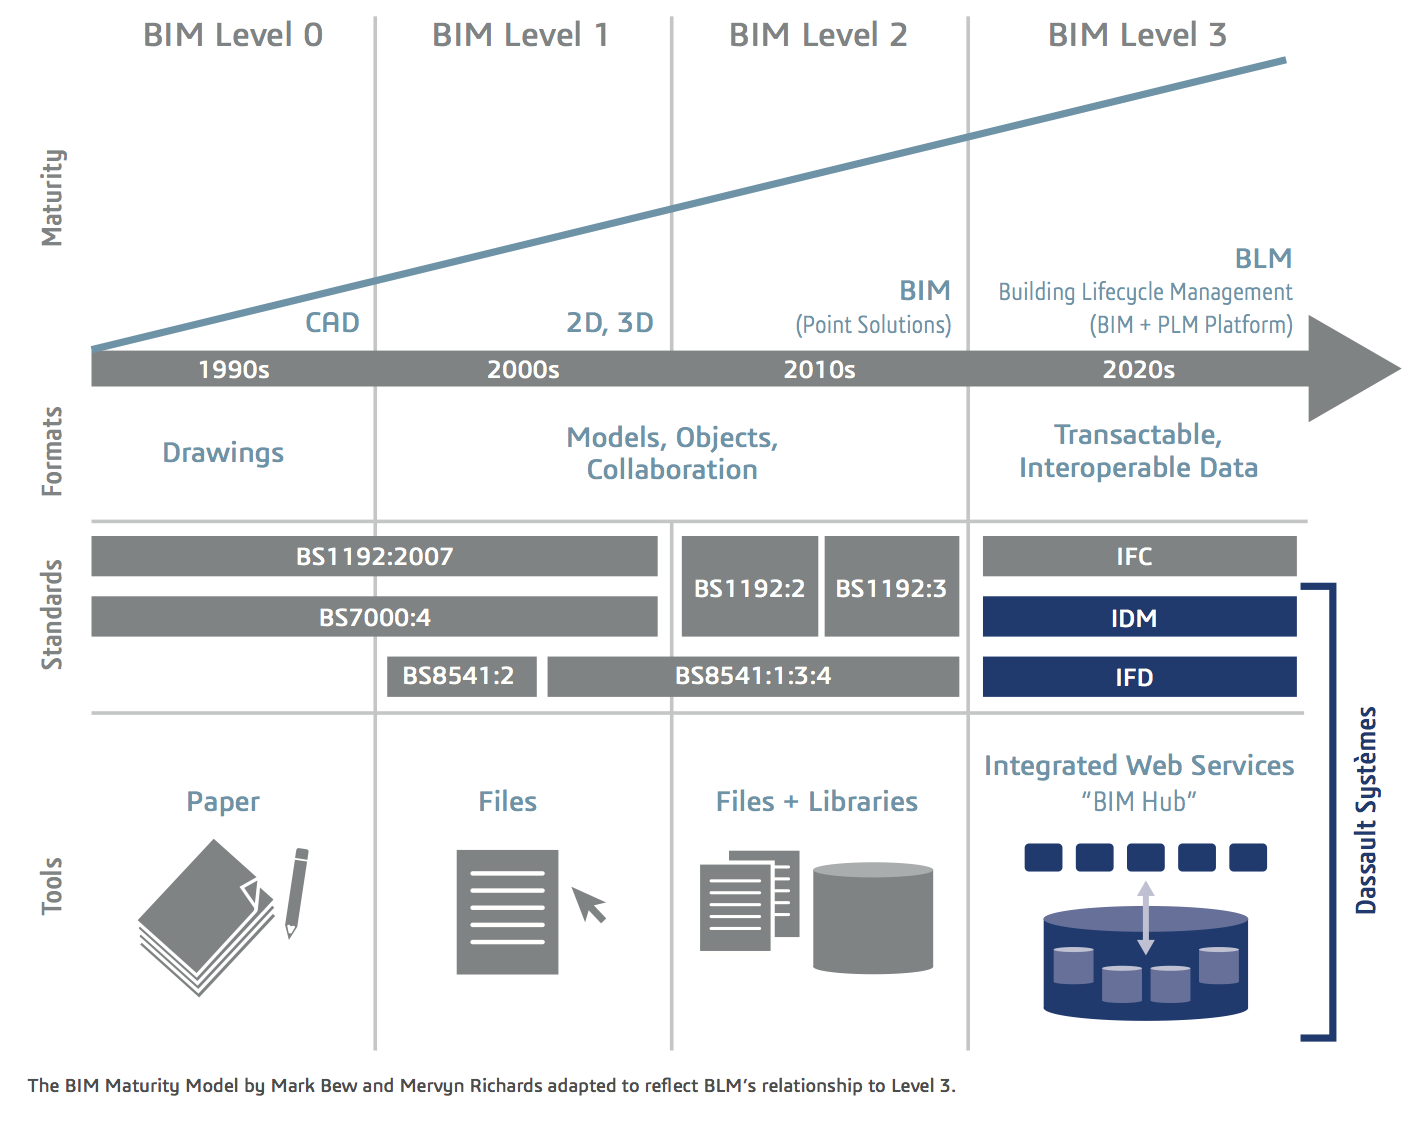 BIM Maturity Model, Updated